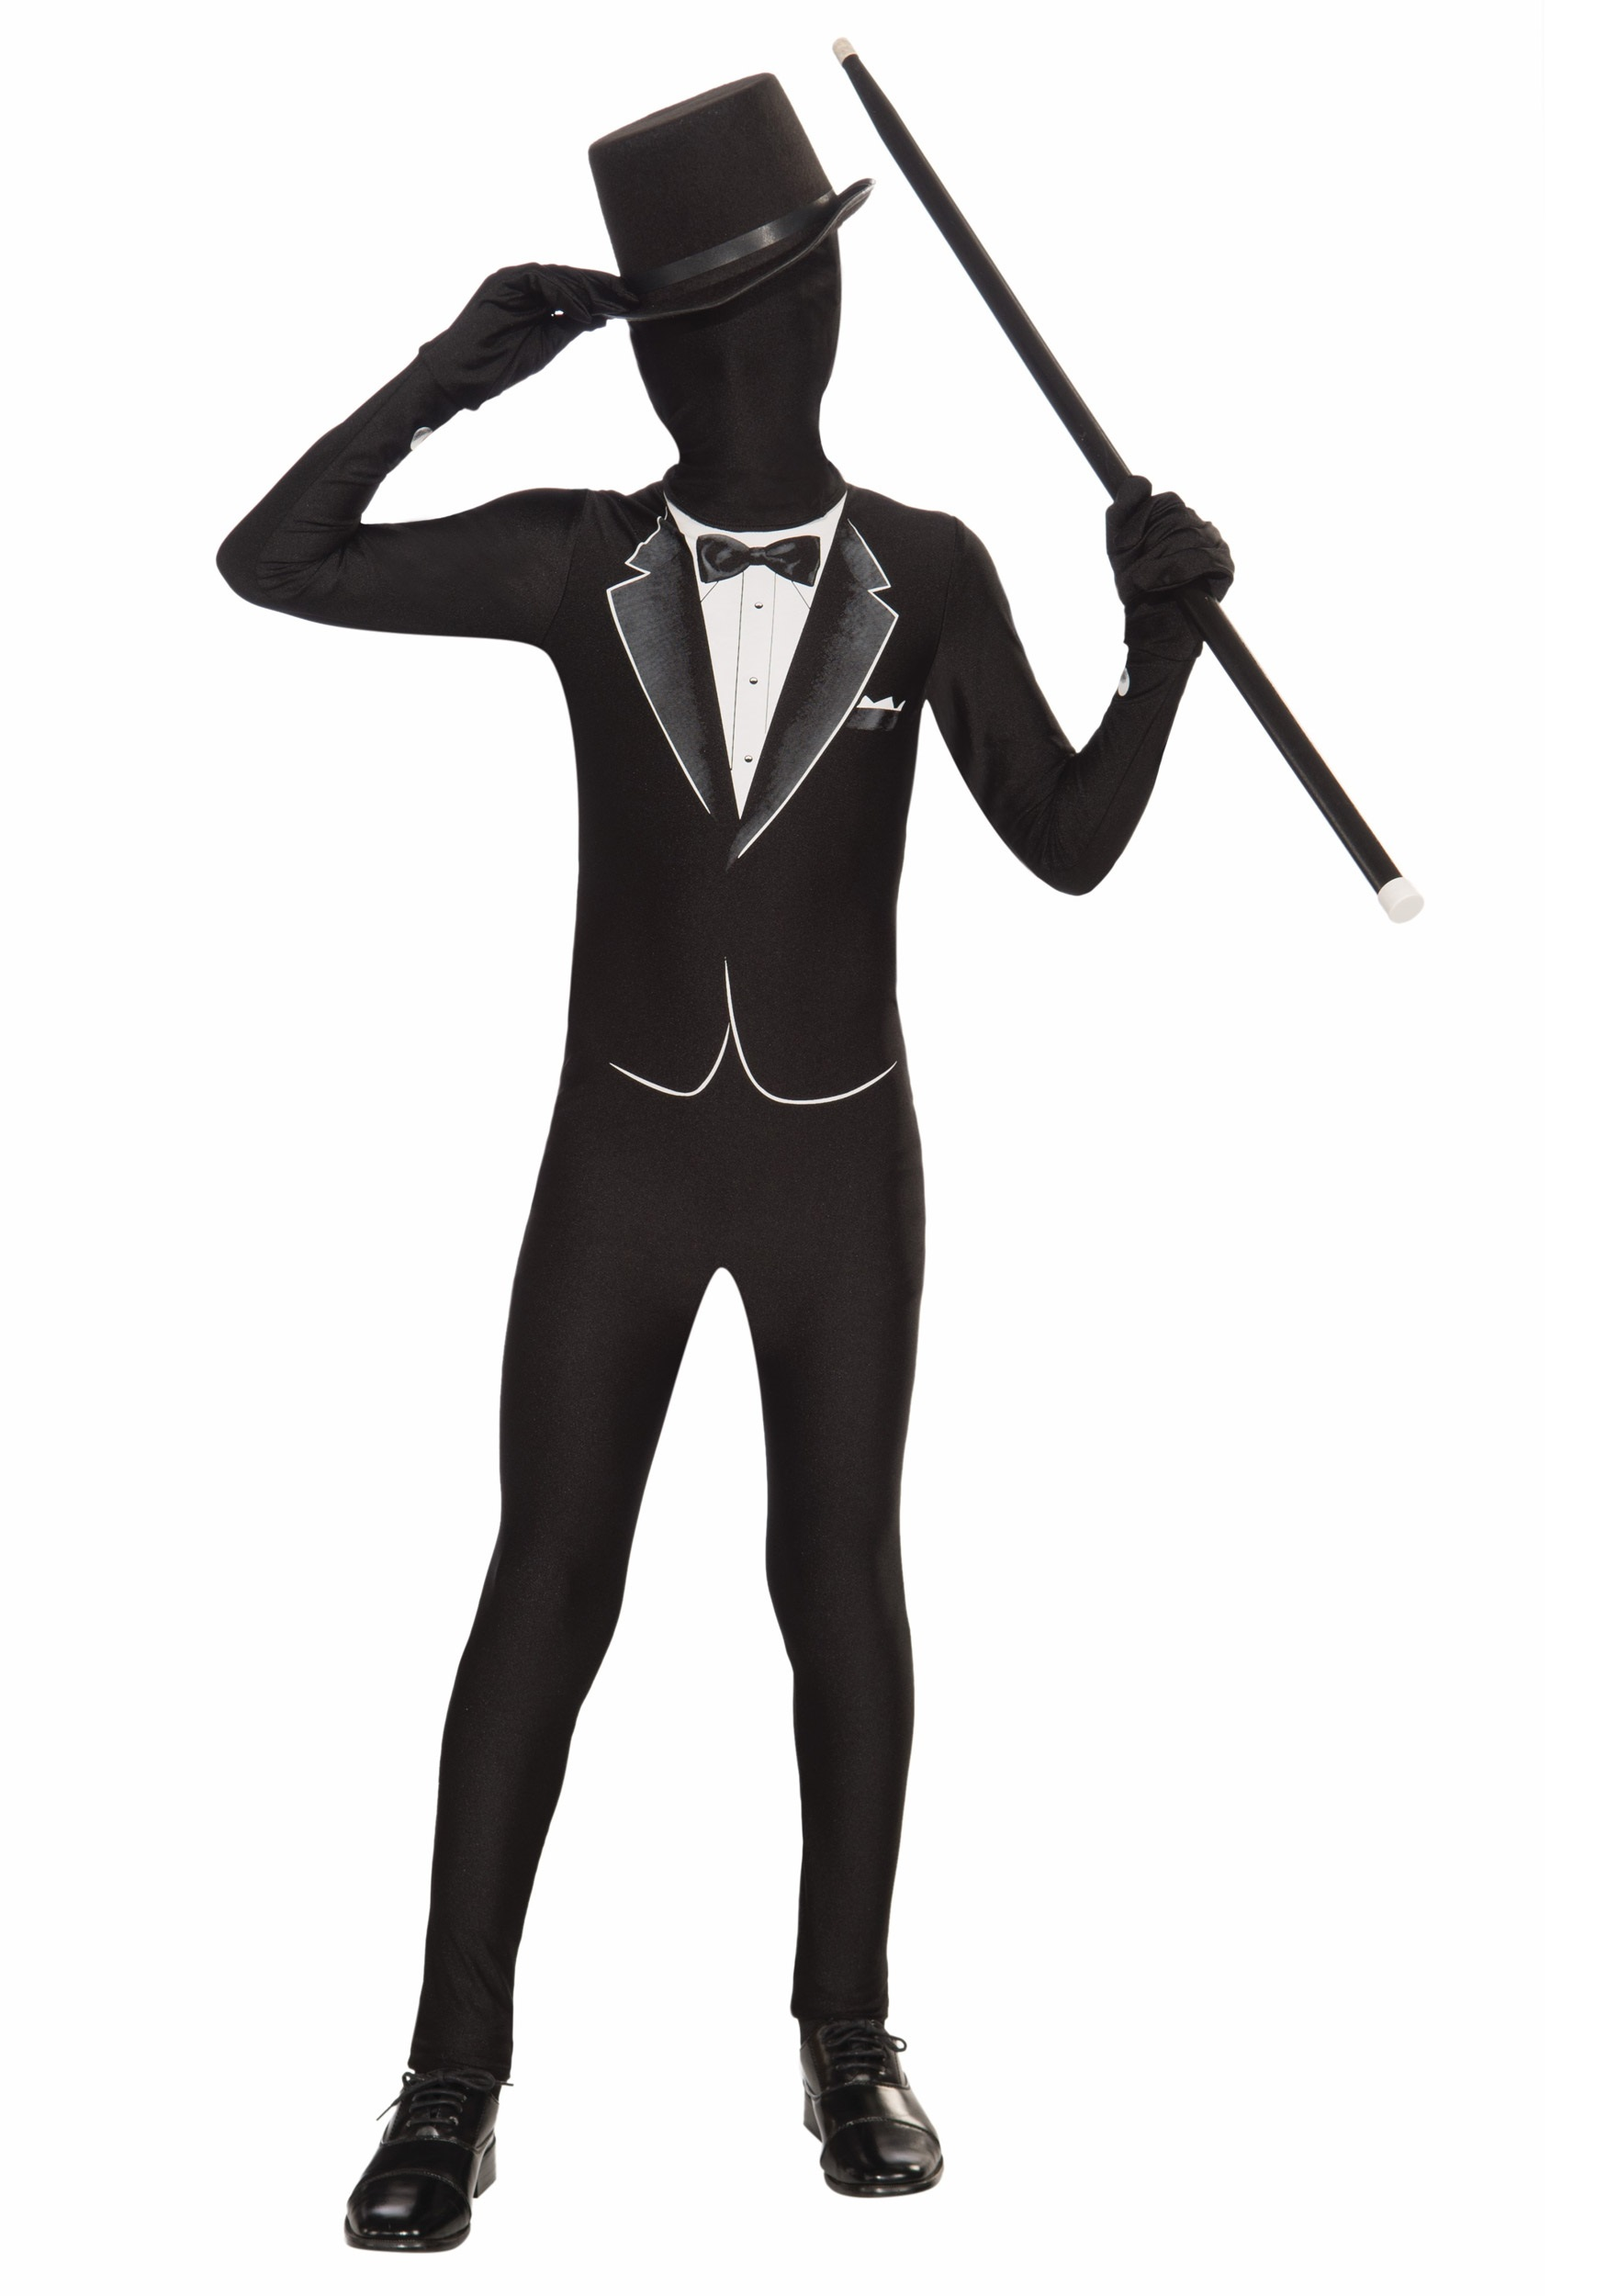 Formal Kids Tuxedo Skin Suit Costume